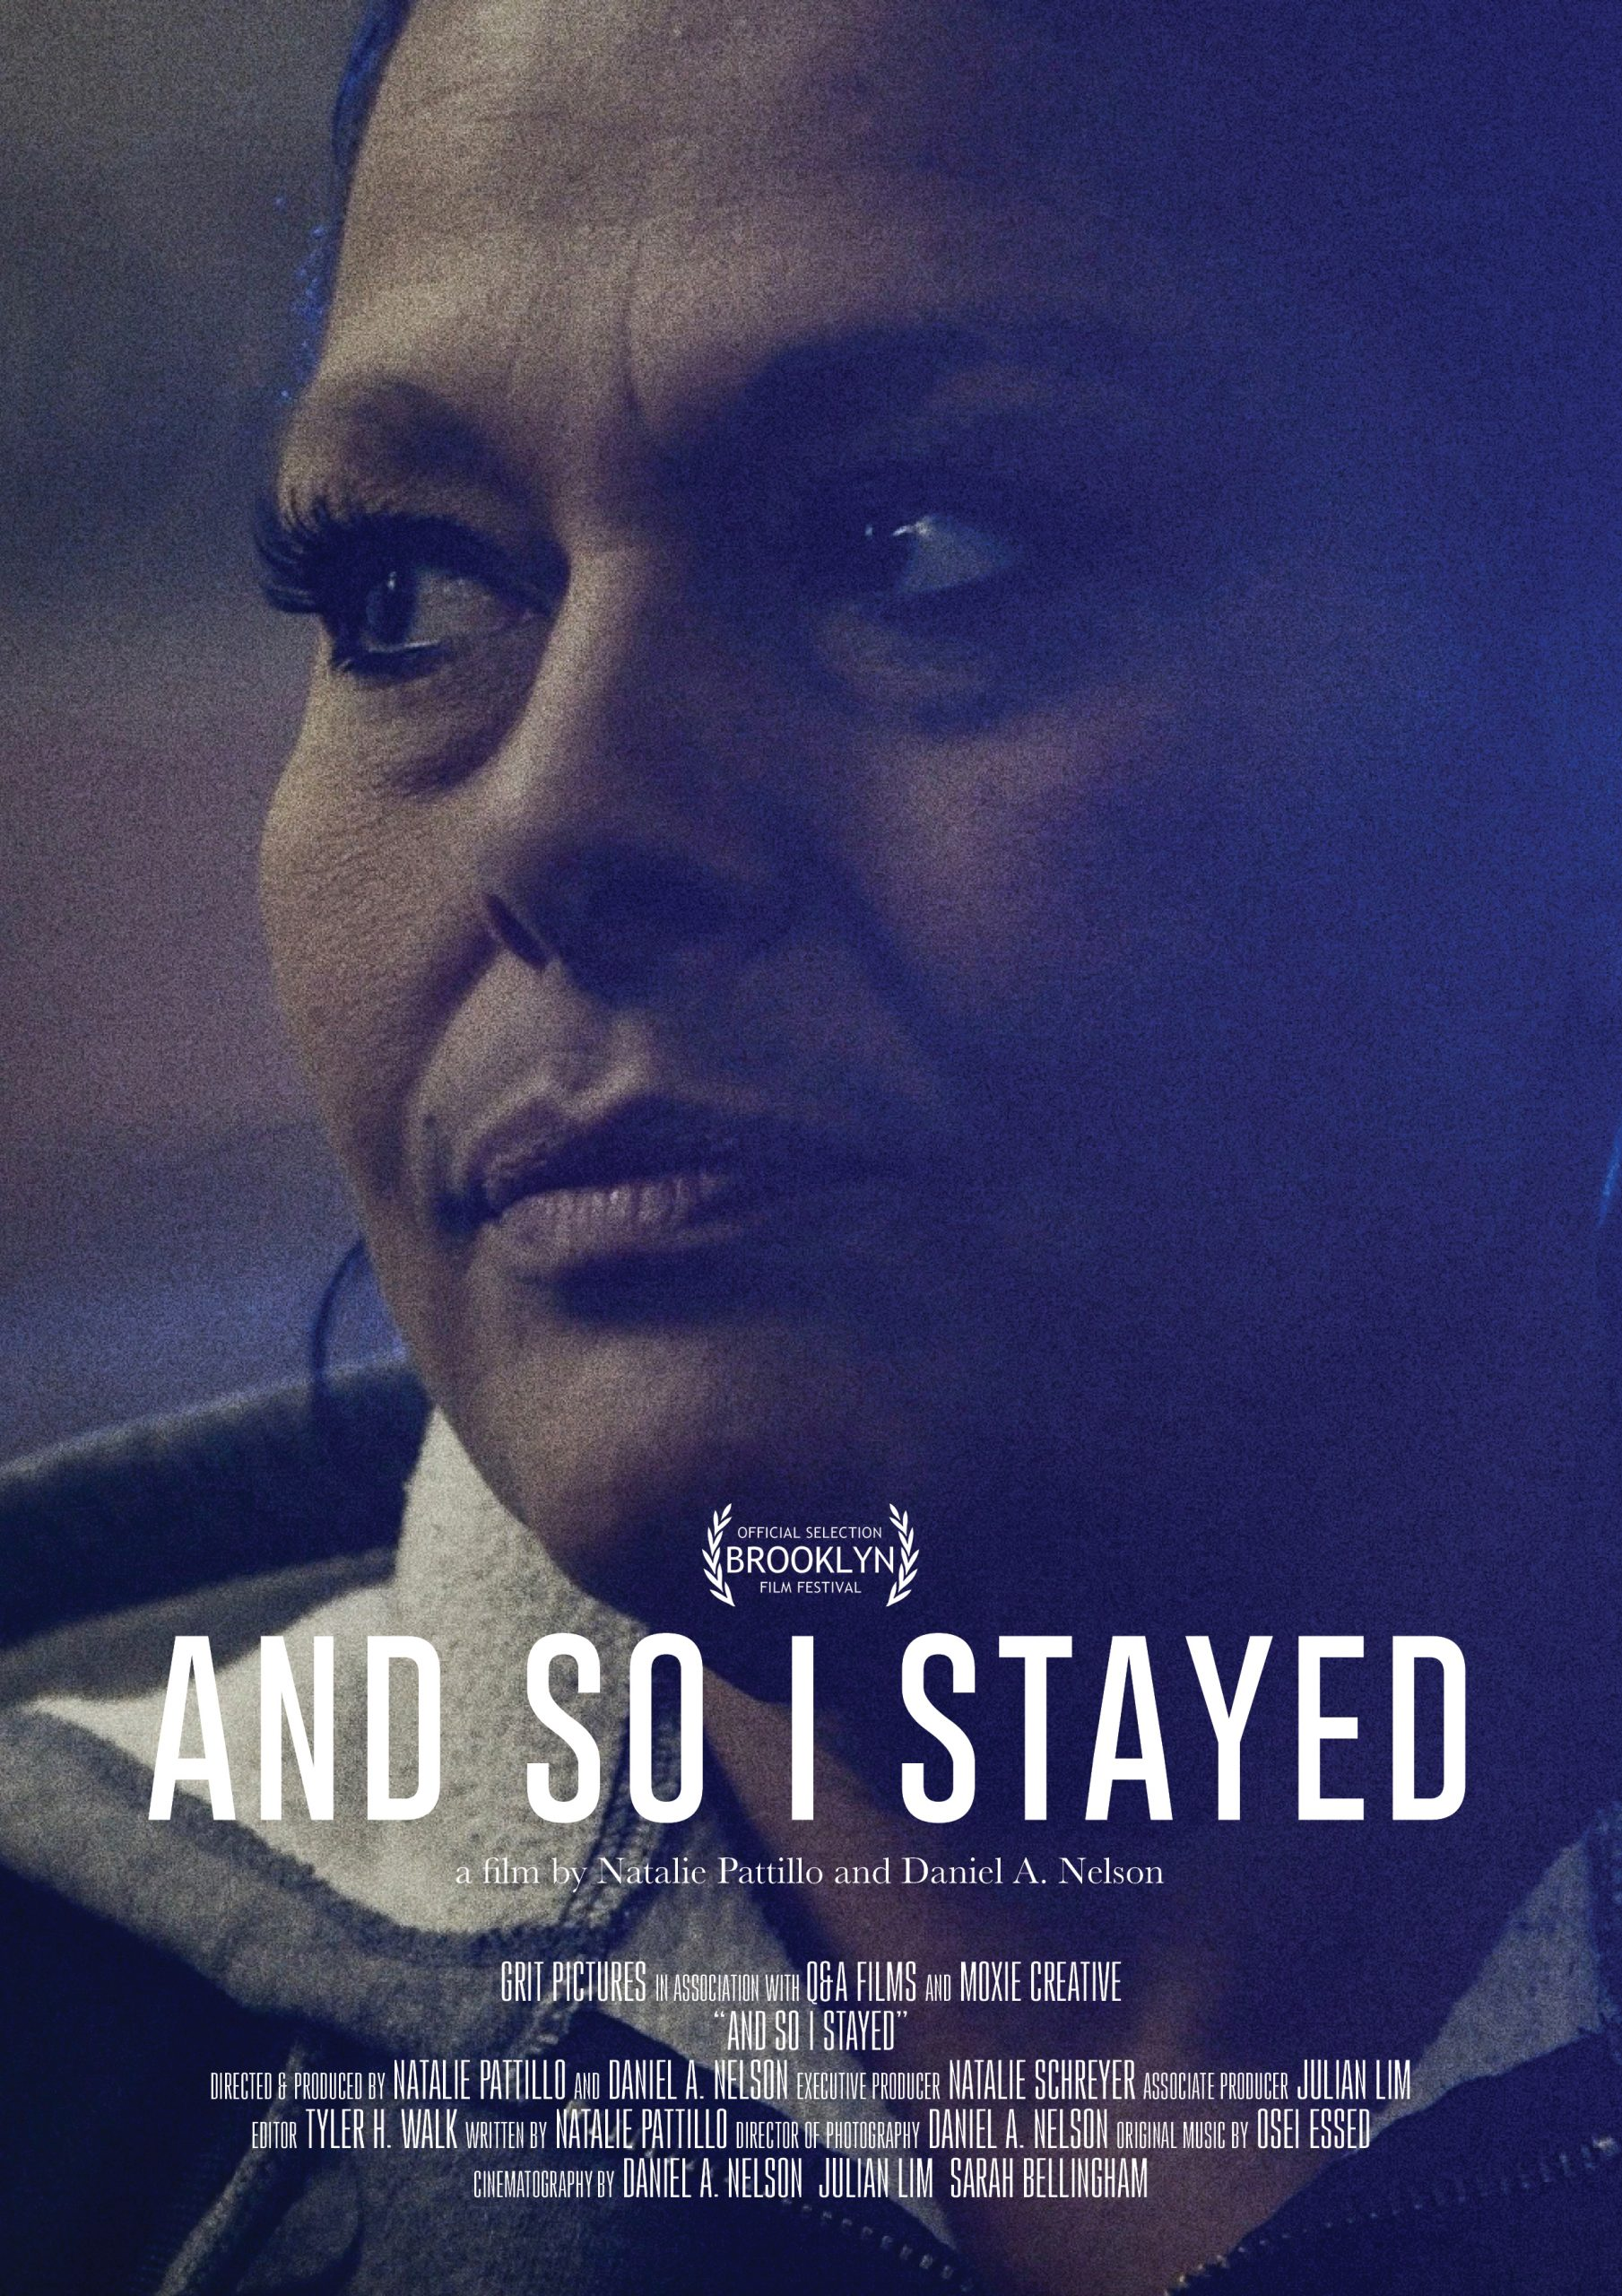 And So I Stayed